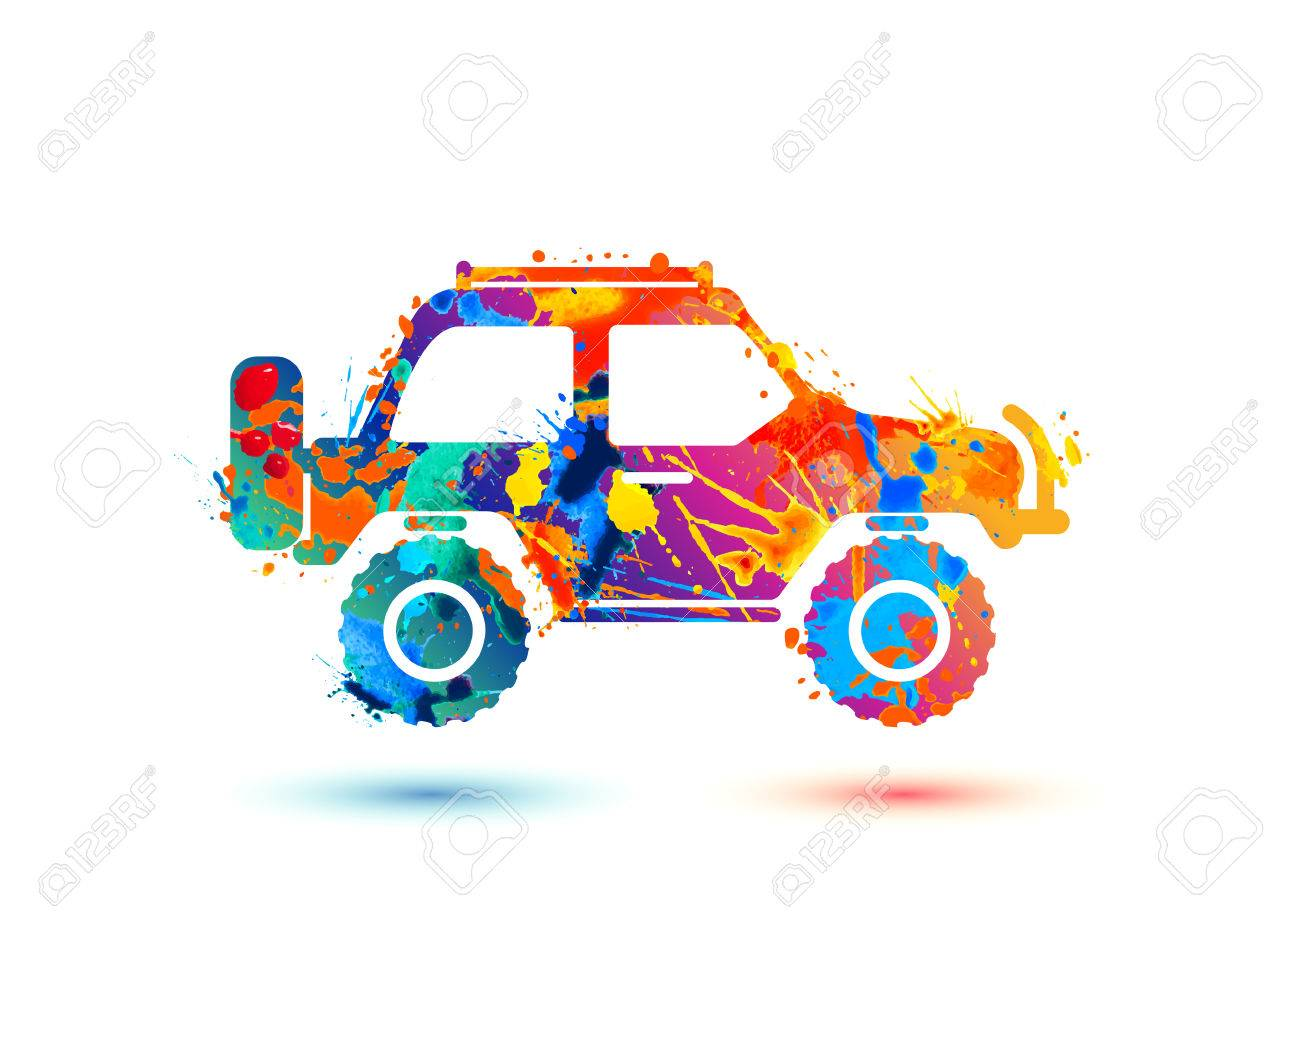 jeep travel splash paint icon on white background royalty free